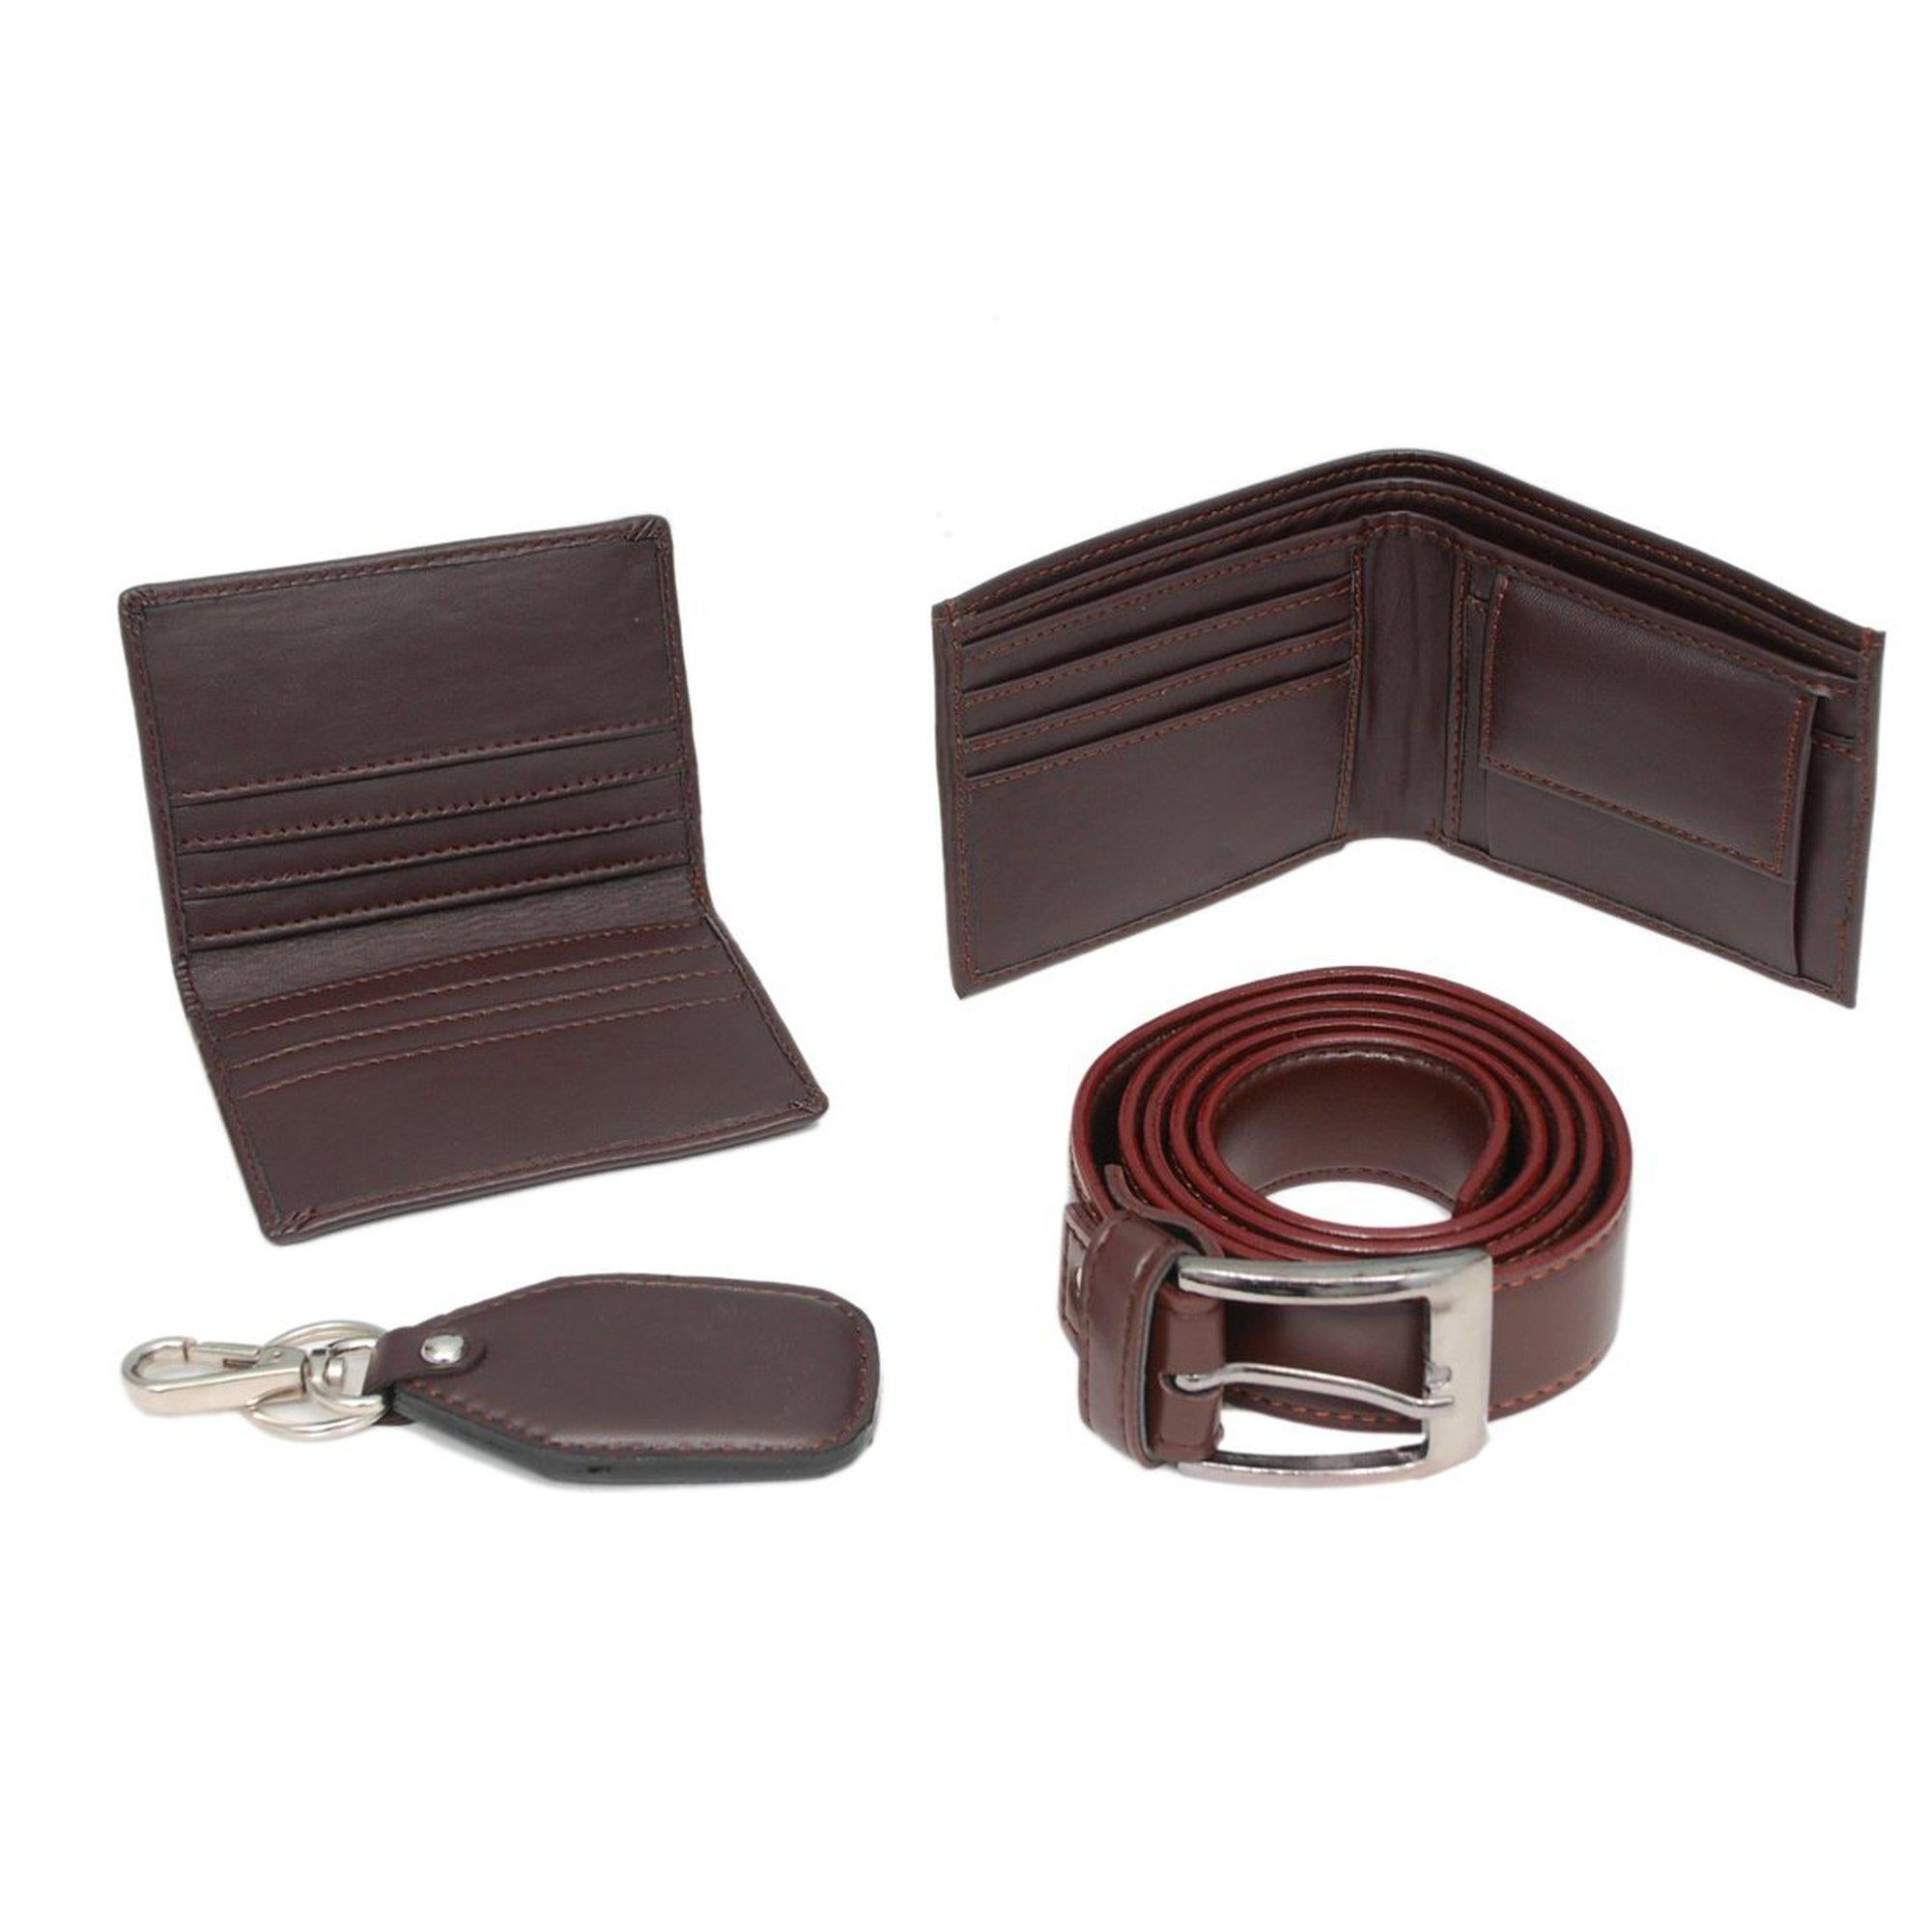 Leather Combo Gifting Set for Men